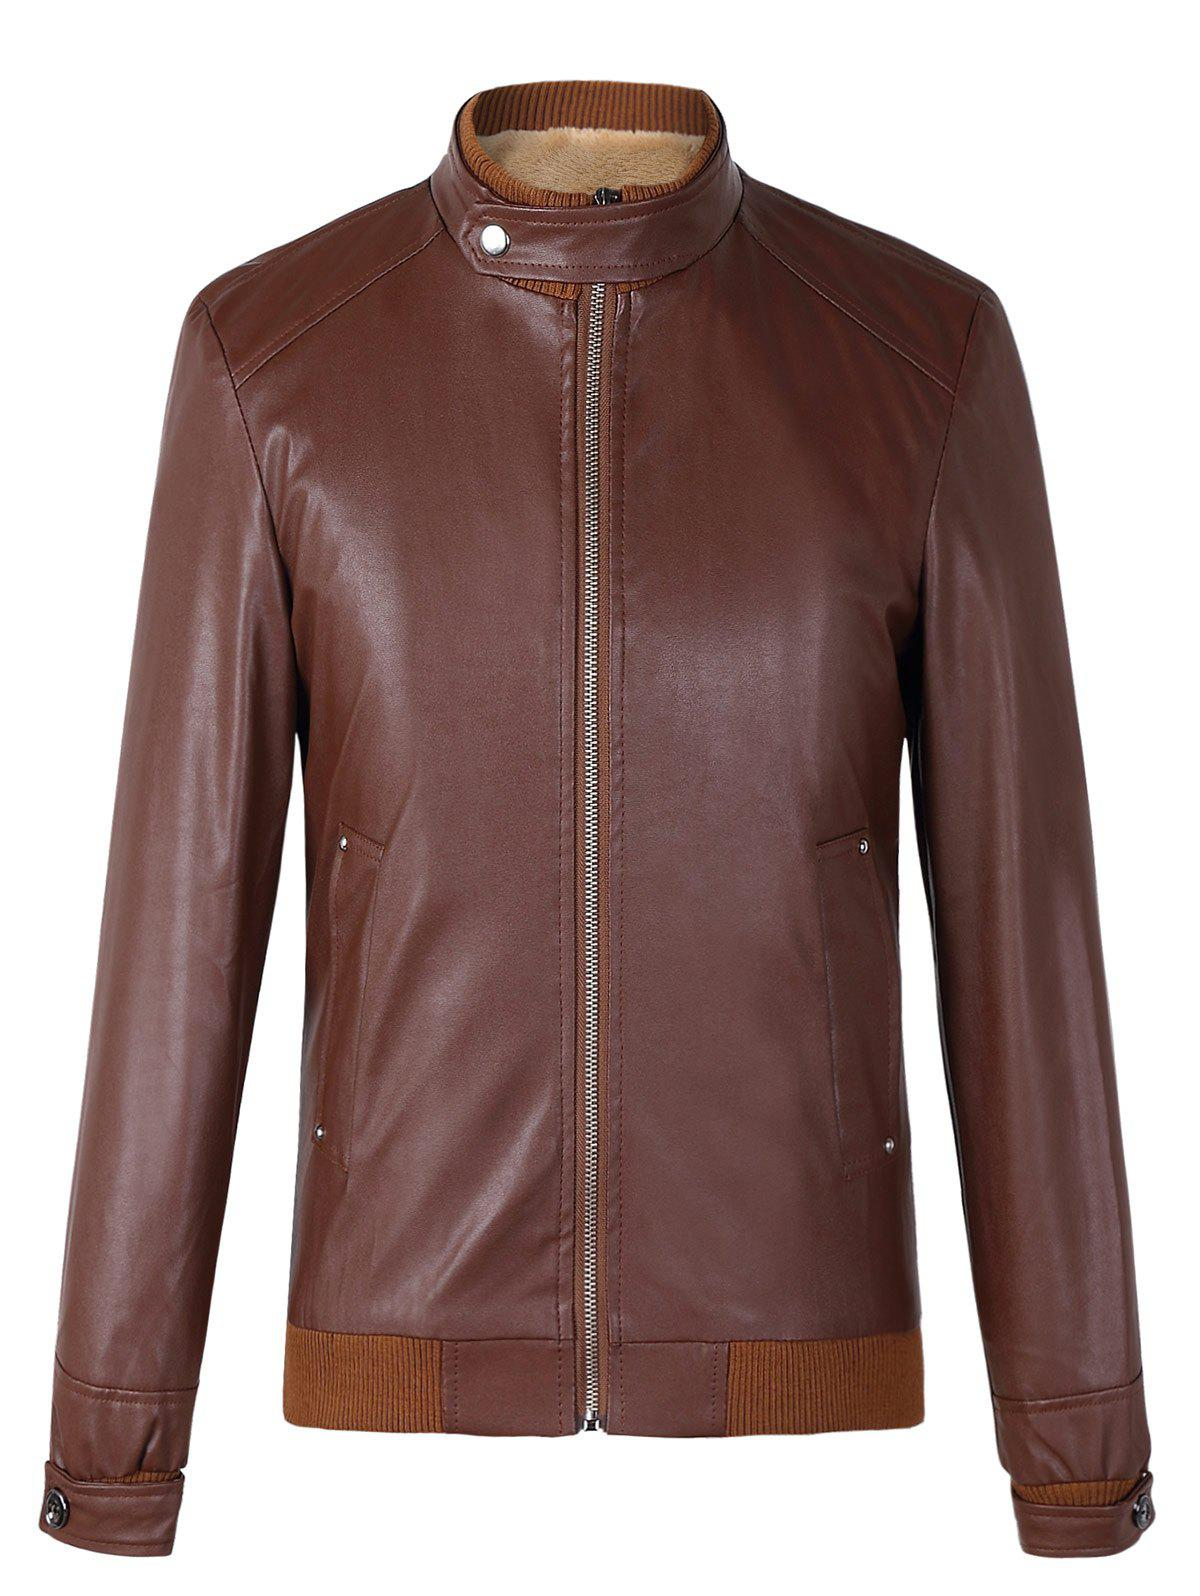 Fashionable Stand Collar Long Sleeves Ribbed Hem Thicken Leather Jacket For Men - COFFEE 3XL